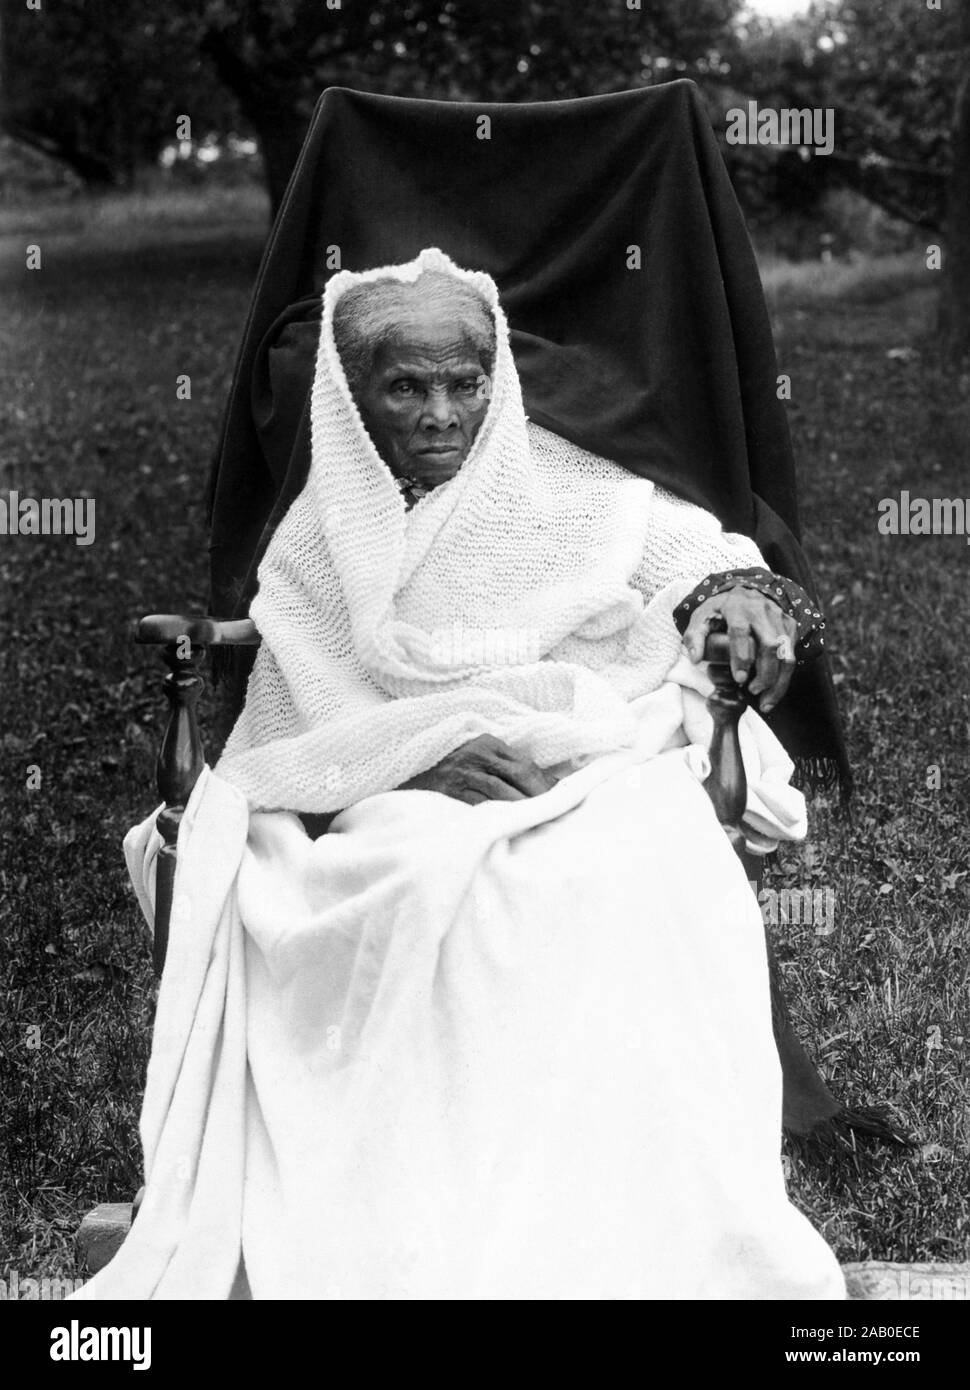 Vintage portrait photo of Harriet Tubman (c1820 – 1913). Born into slavery, Tubman (birth name Araminta Ross) escaped and later guided other slaves to freedom via the Underground Railroad before working as a nurse, spy and scout for the Union Army during the American Civil War. In later life she engaged in humanitarian work and promoted the cause of women's suffrage. Photo circa 1911, likely taken at Tubman's home in Auburn, New York. Stock Photo